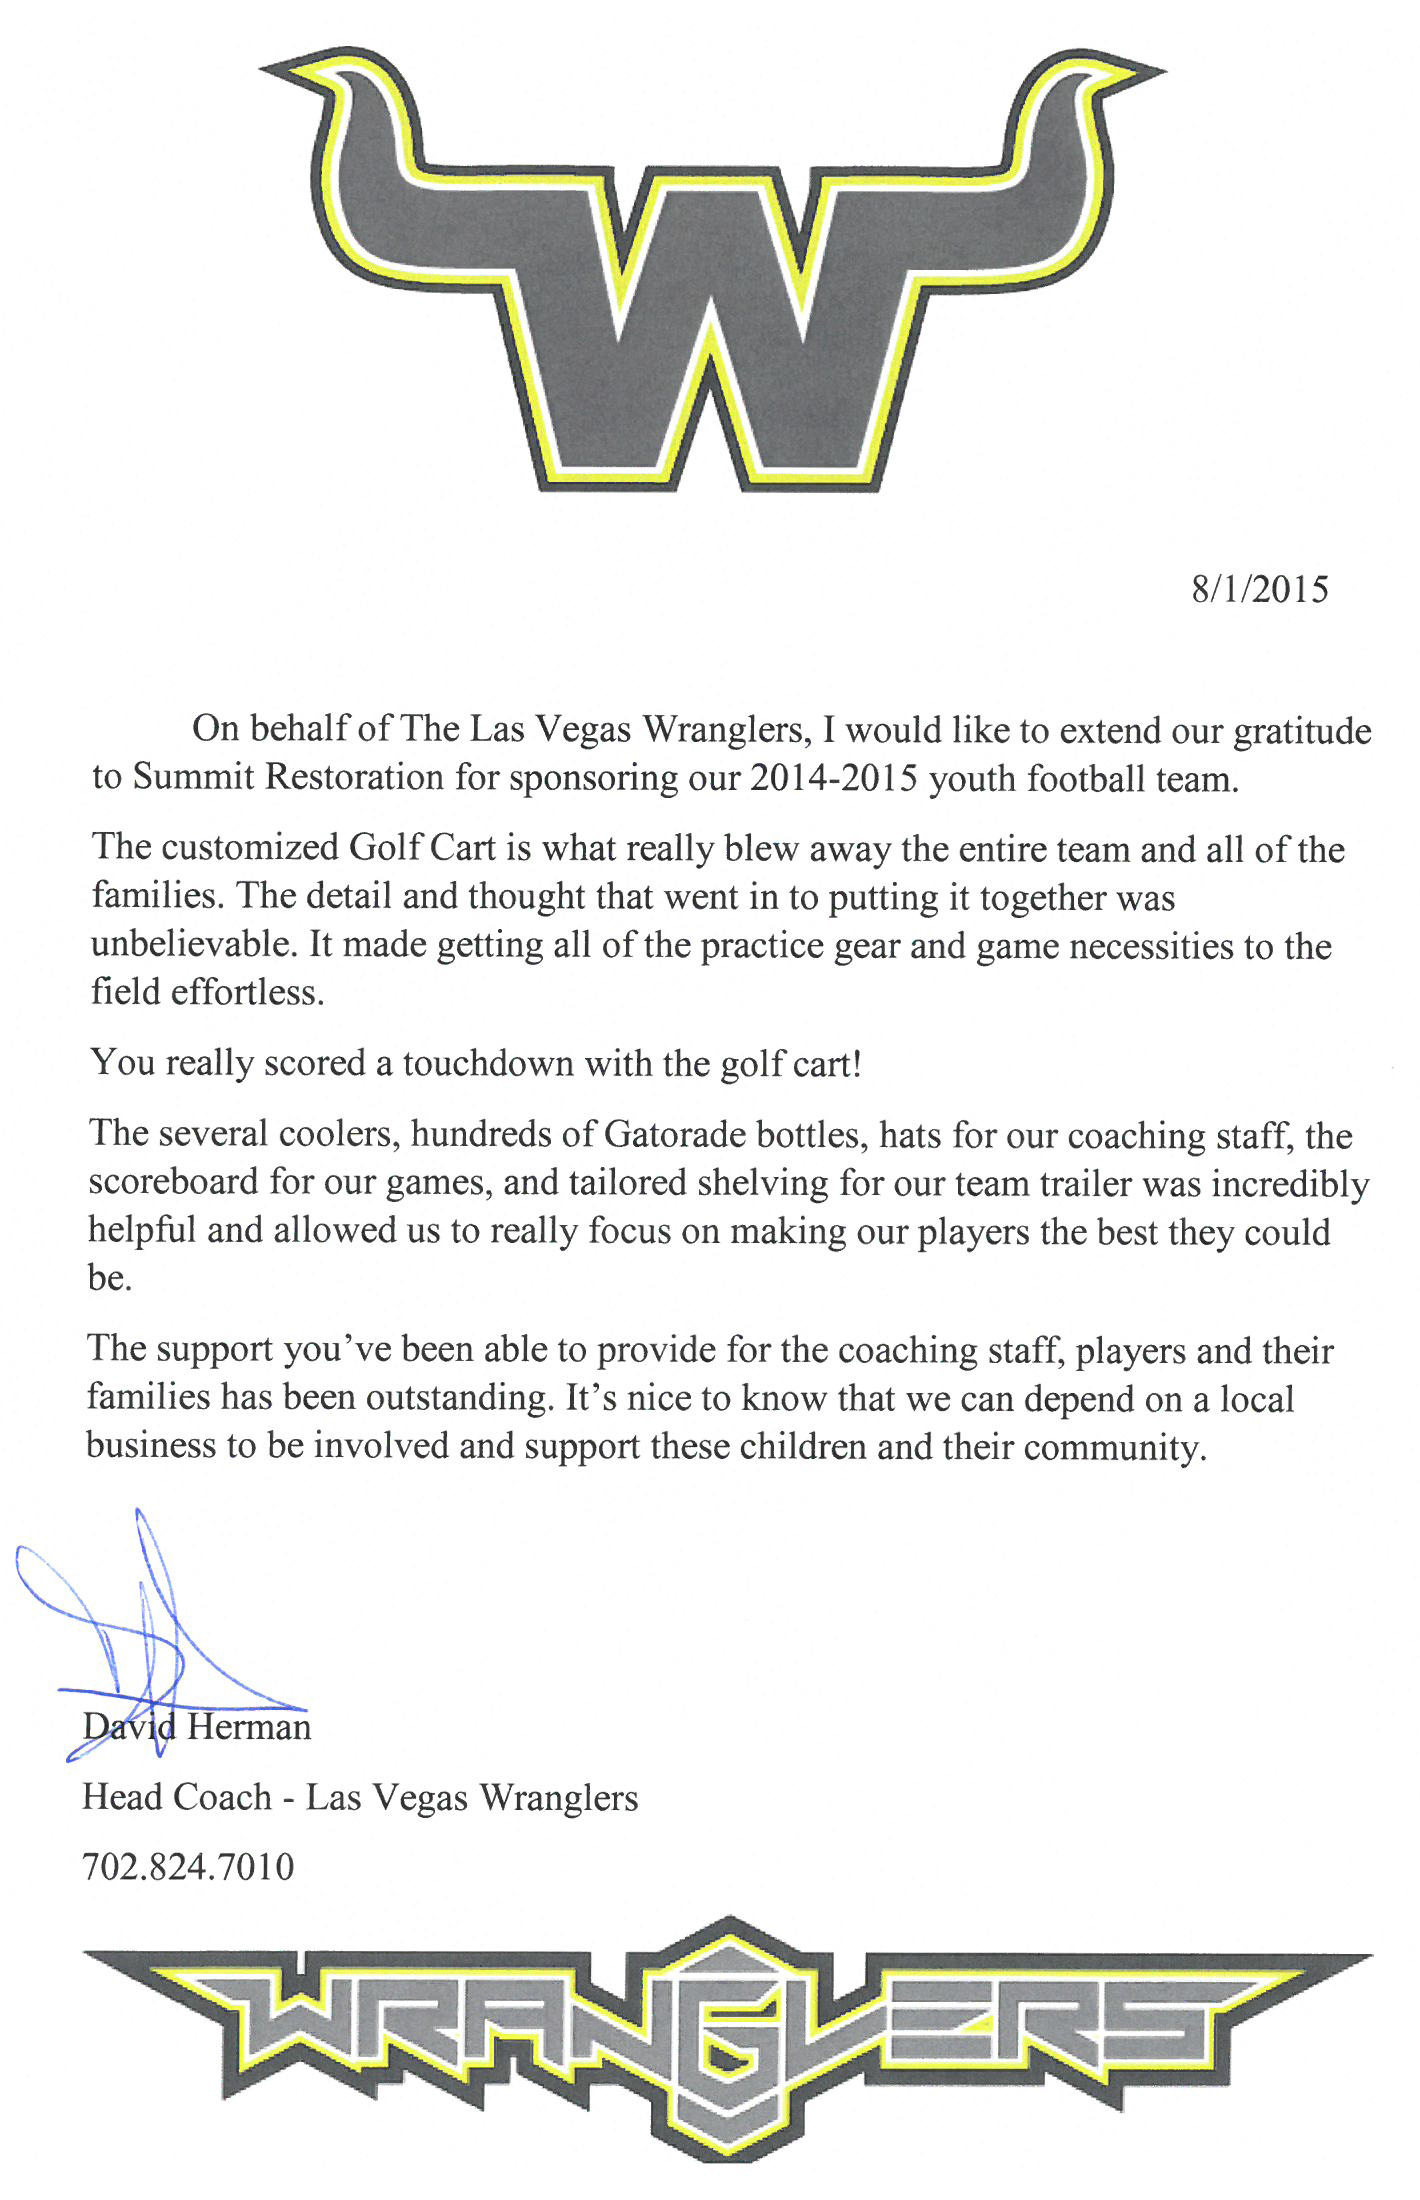 Testimonial from David Herman Head Coach – Las Vegas Wranglers